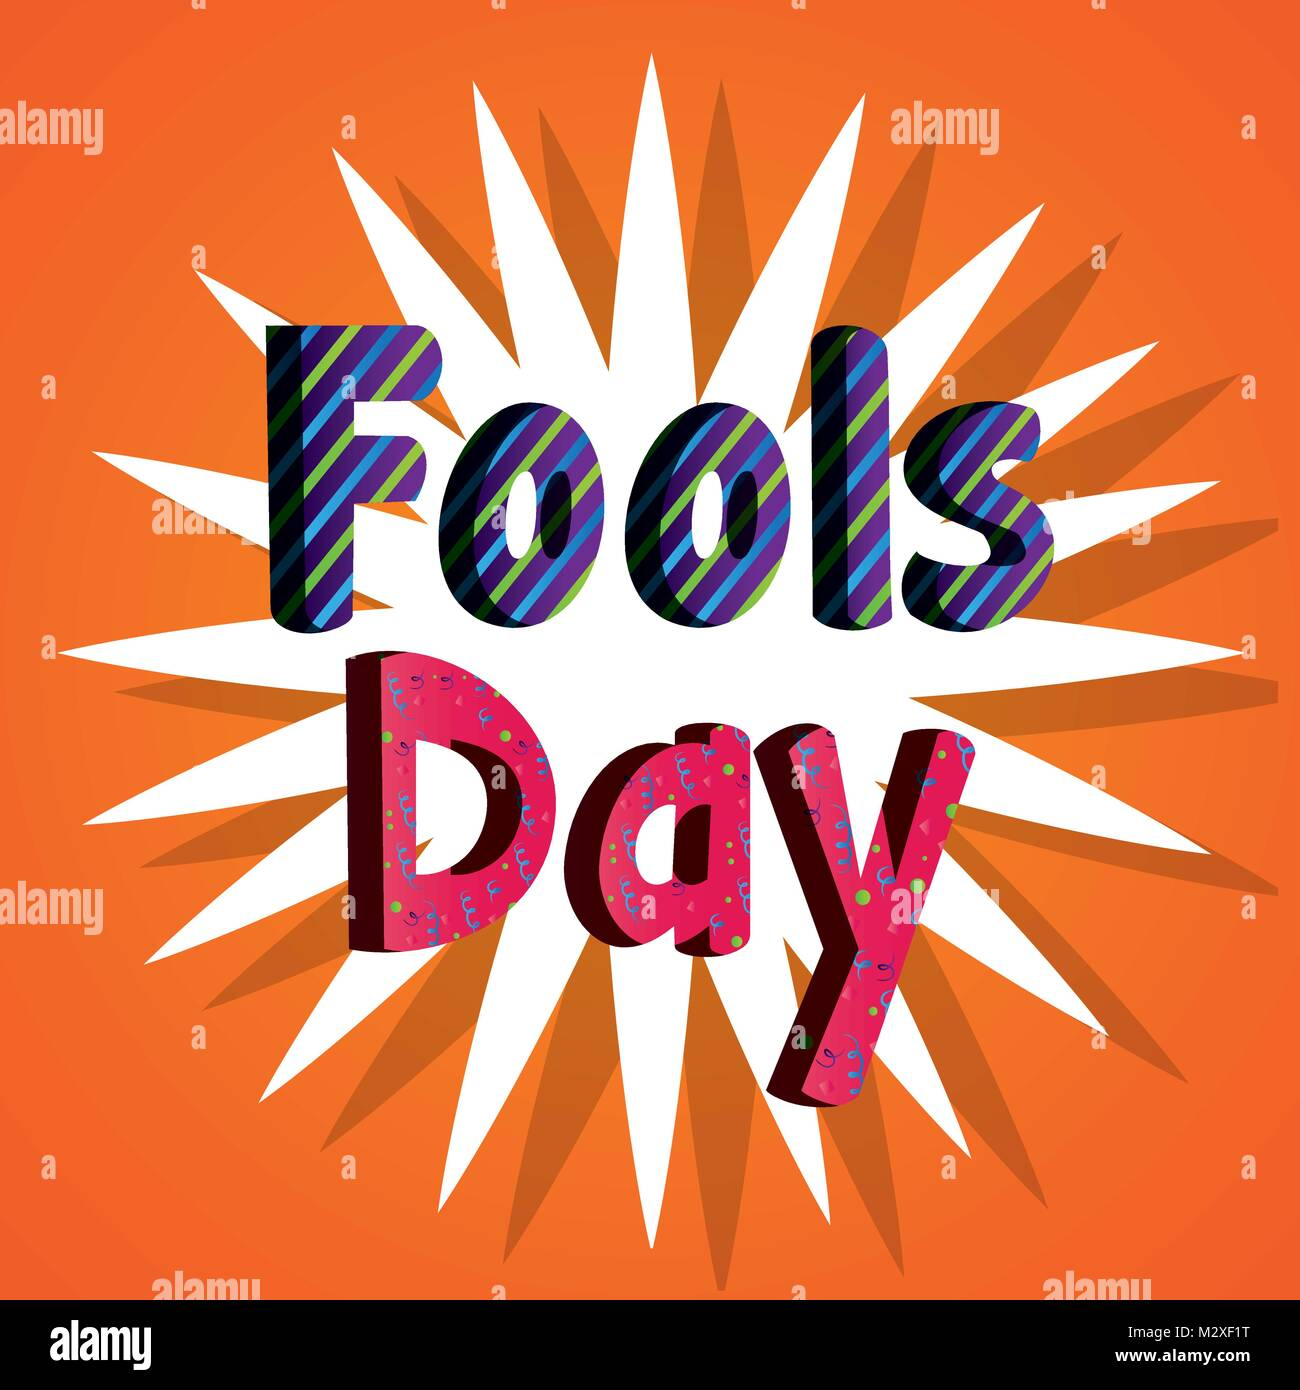 fools day poster typographic text - Stock Image